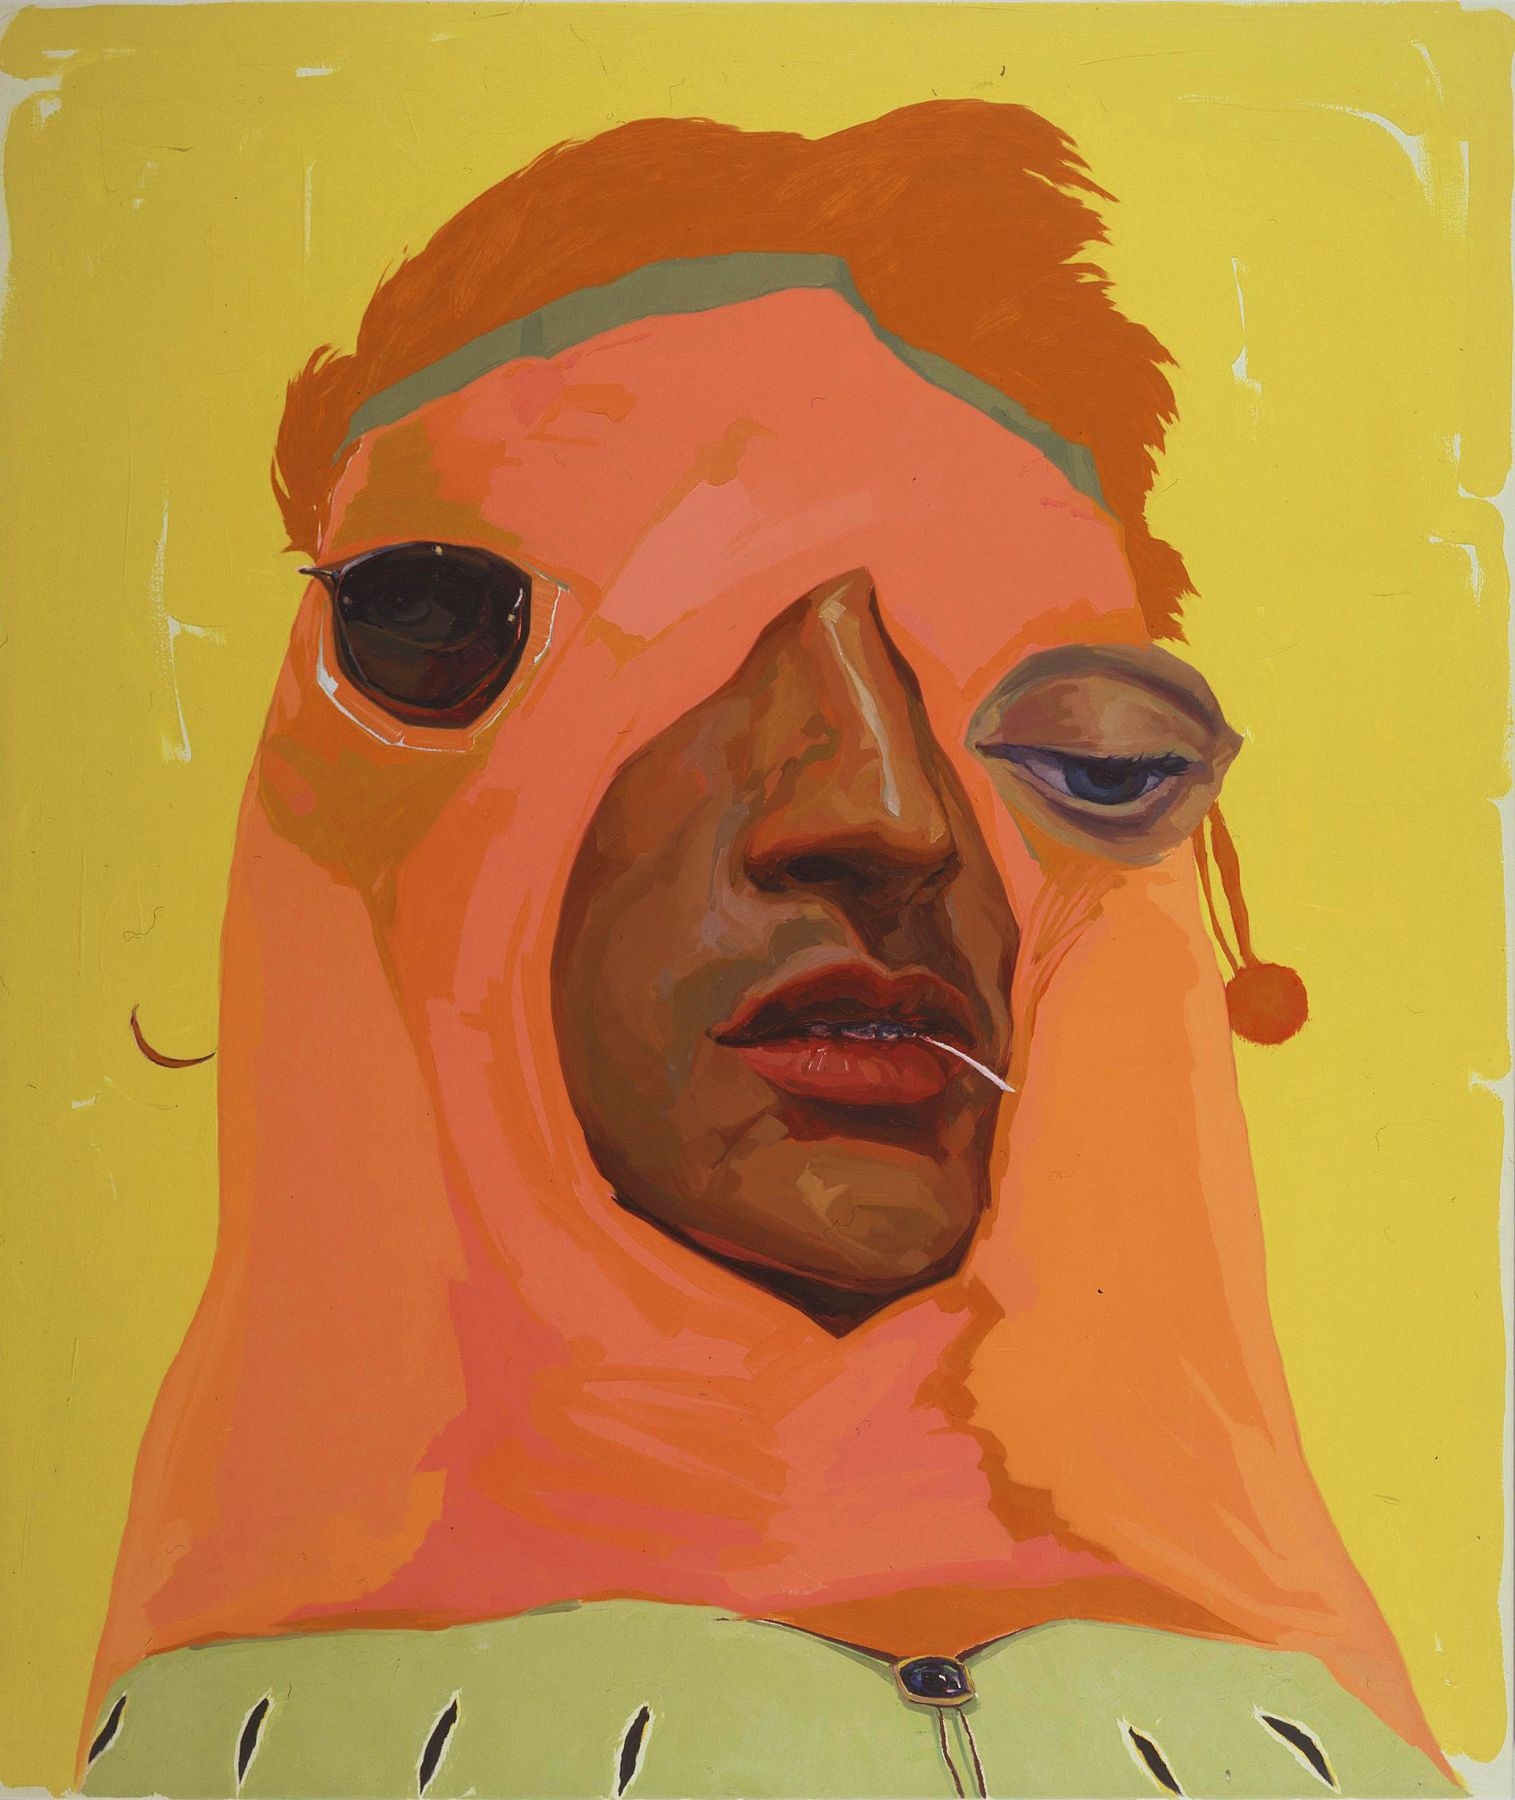 portrait of a man with an orange hood